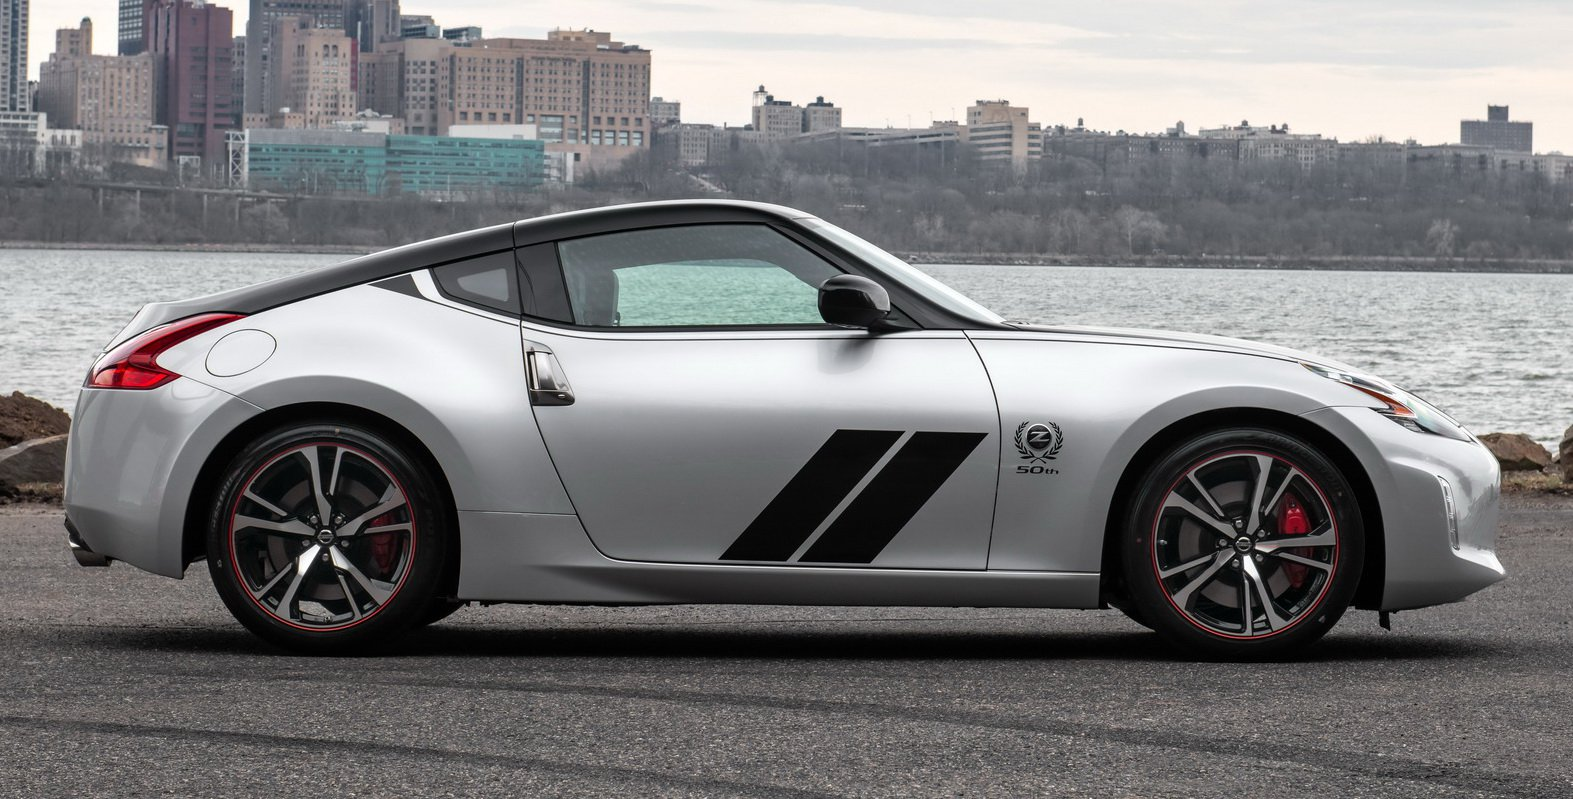 62 The Best 2020 Nissan 370Z Specs